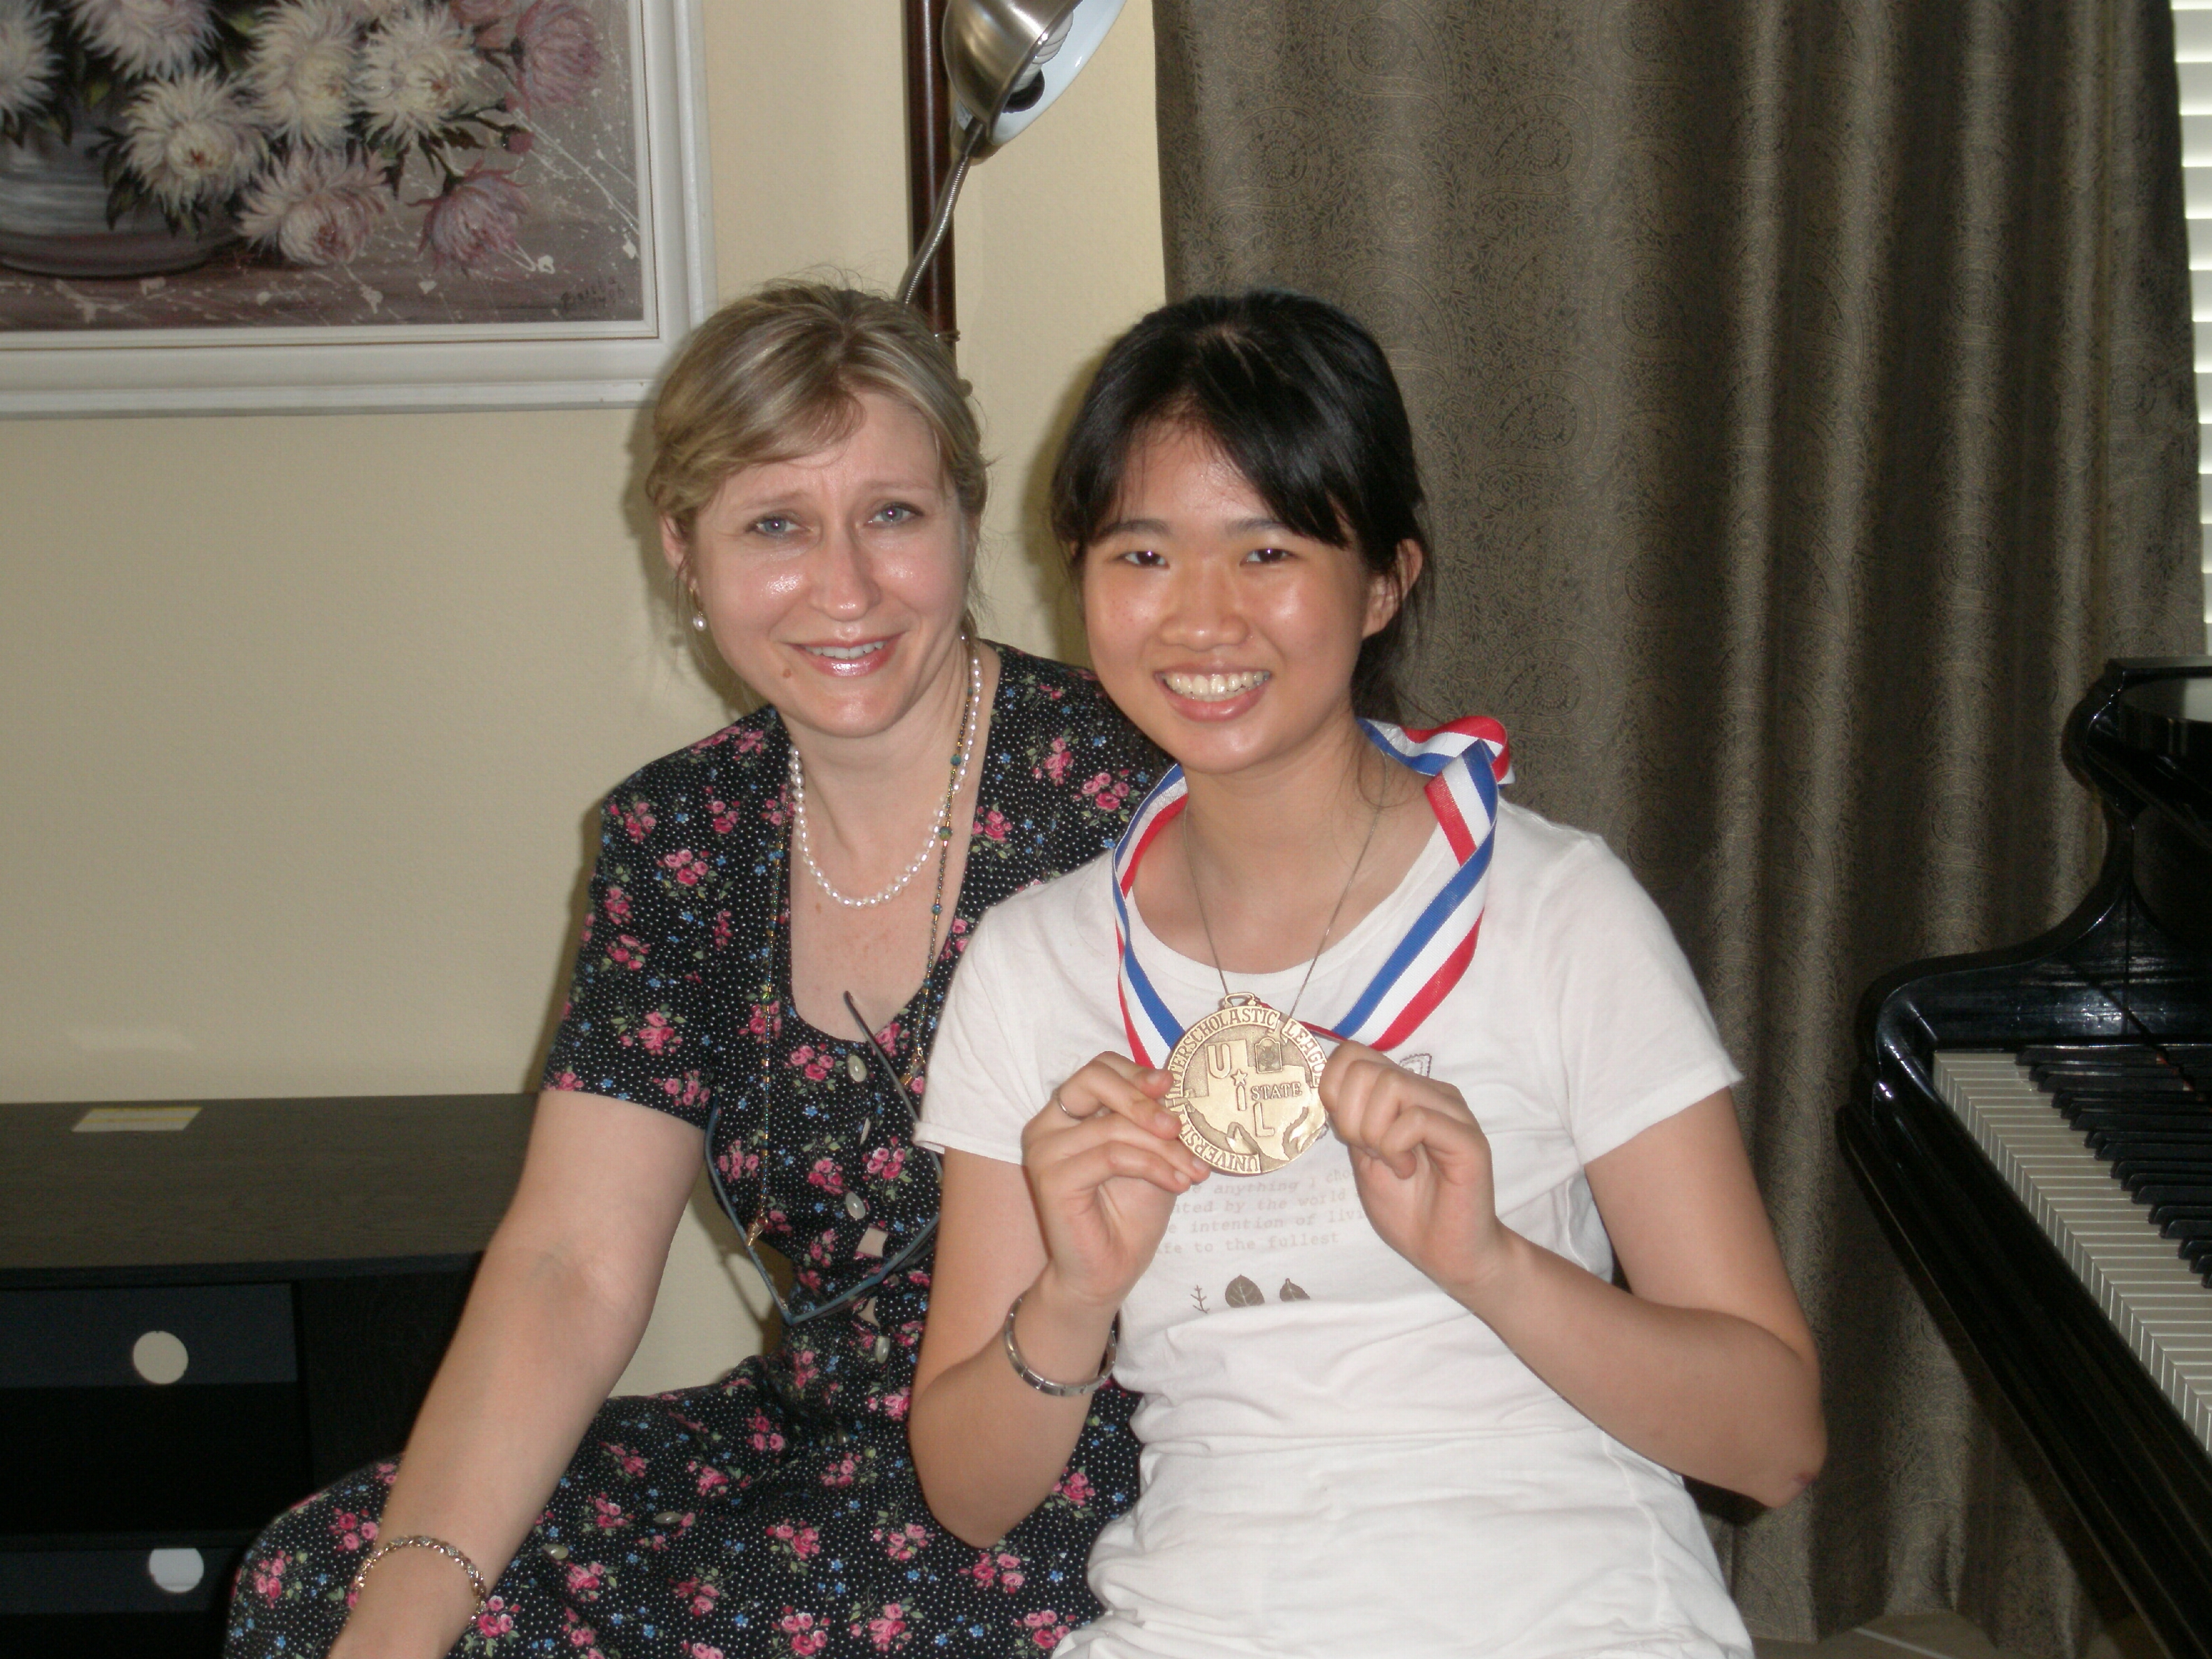 Melissa with UIL medal